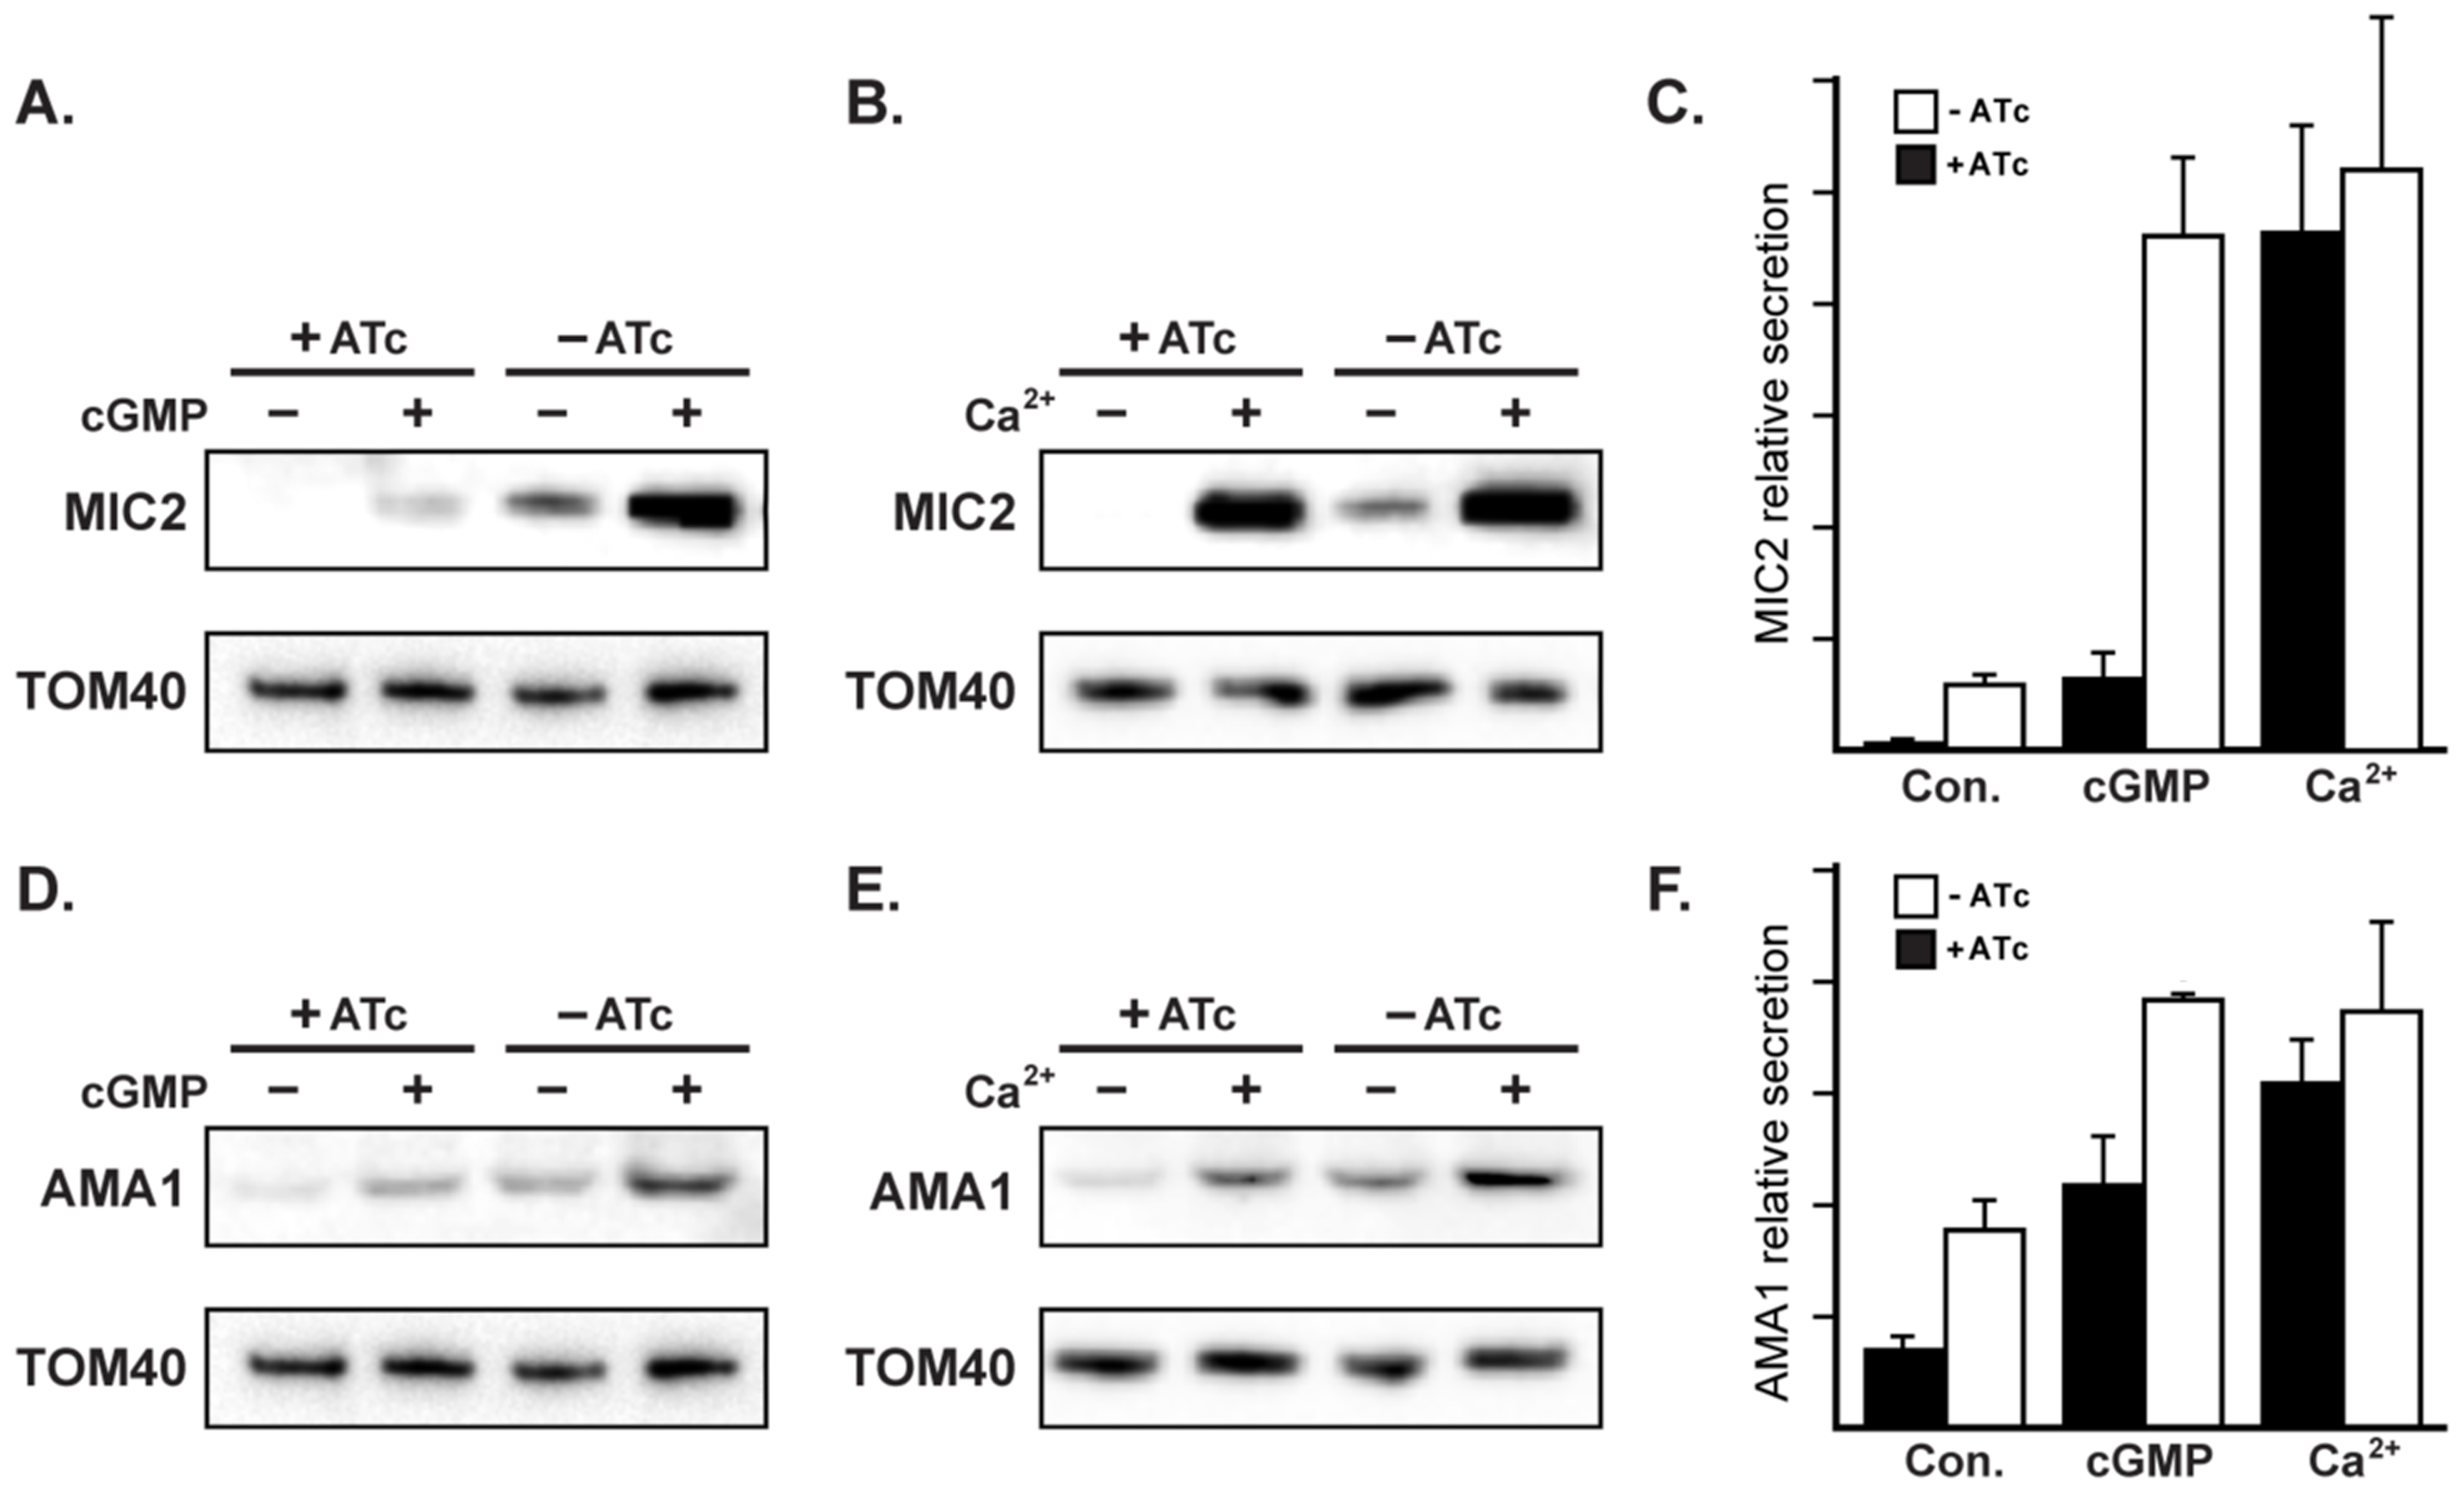 RNG2 has a role in regulated microneme secretion.